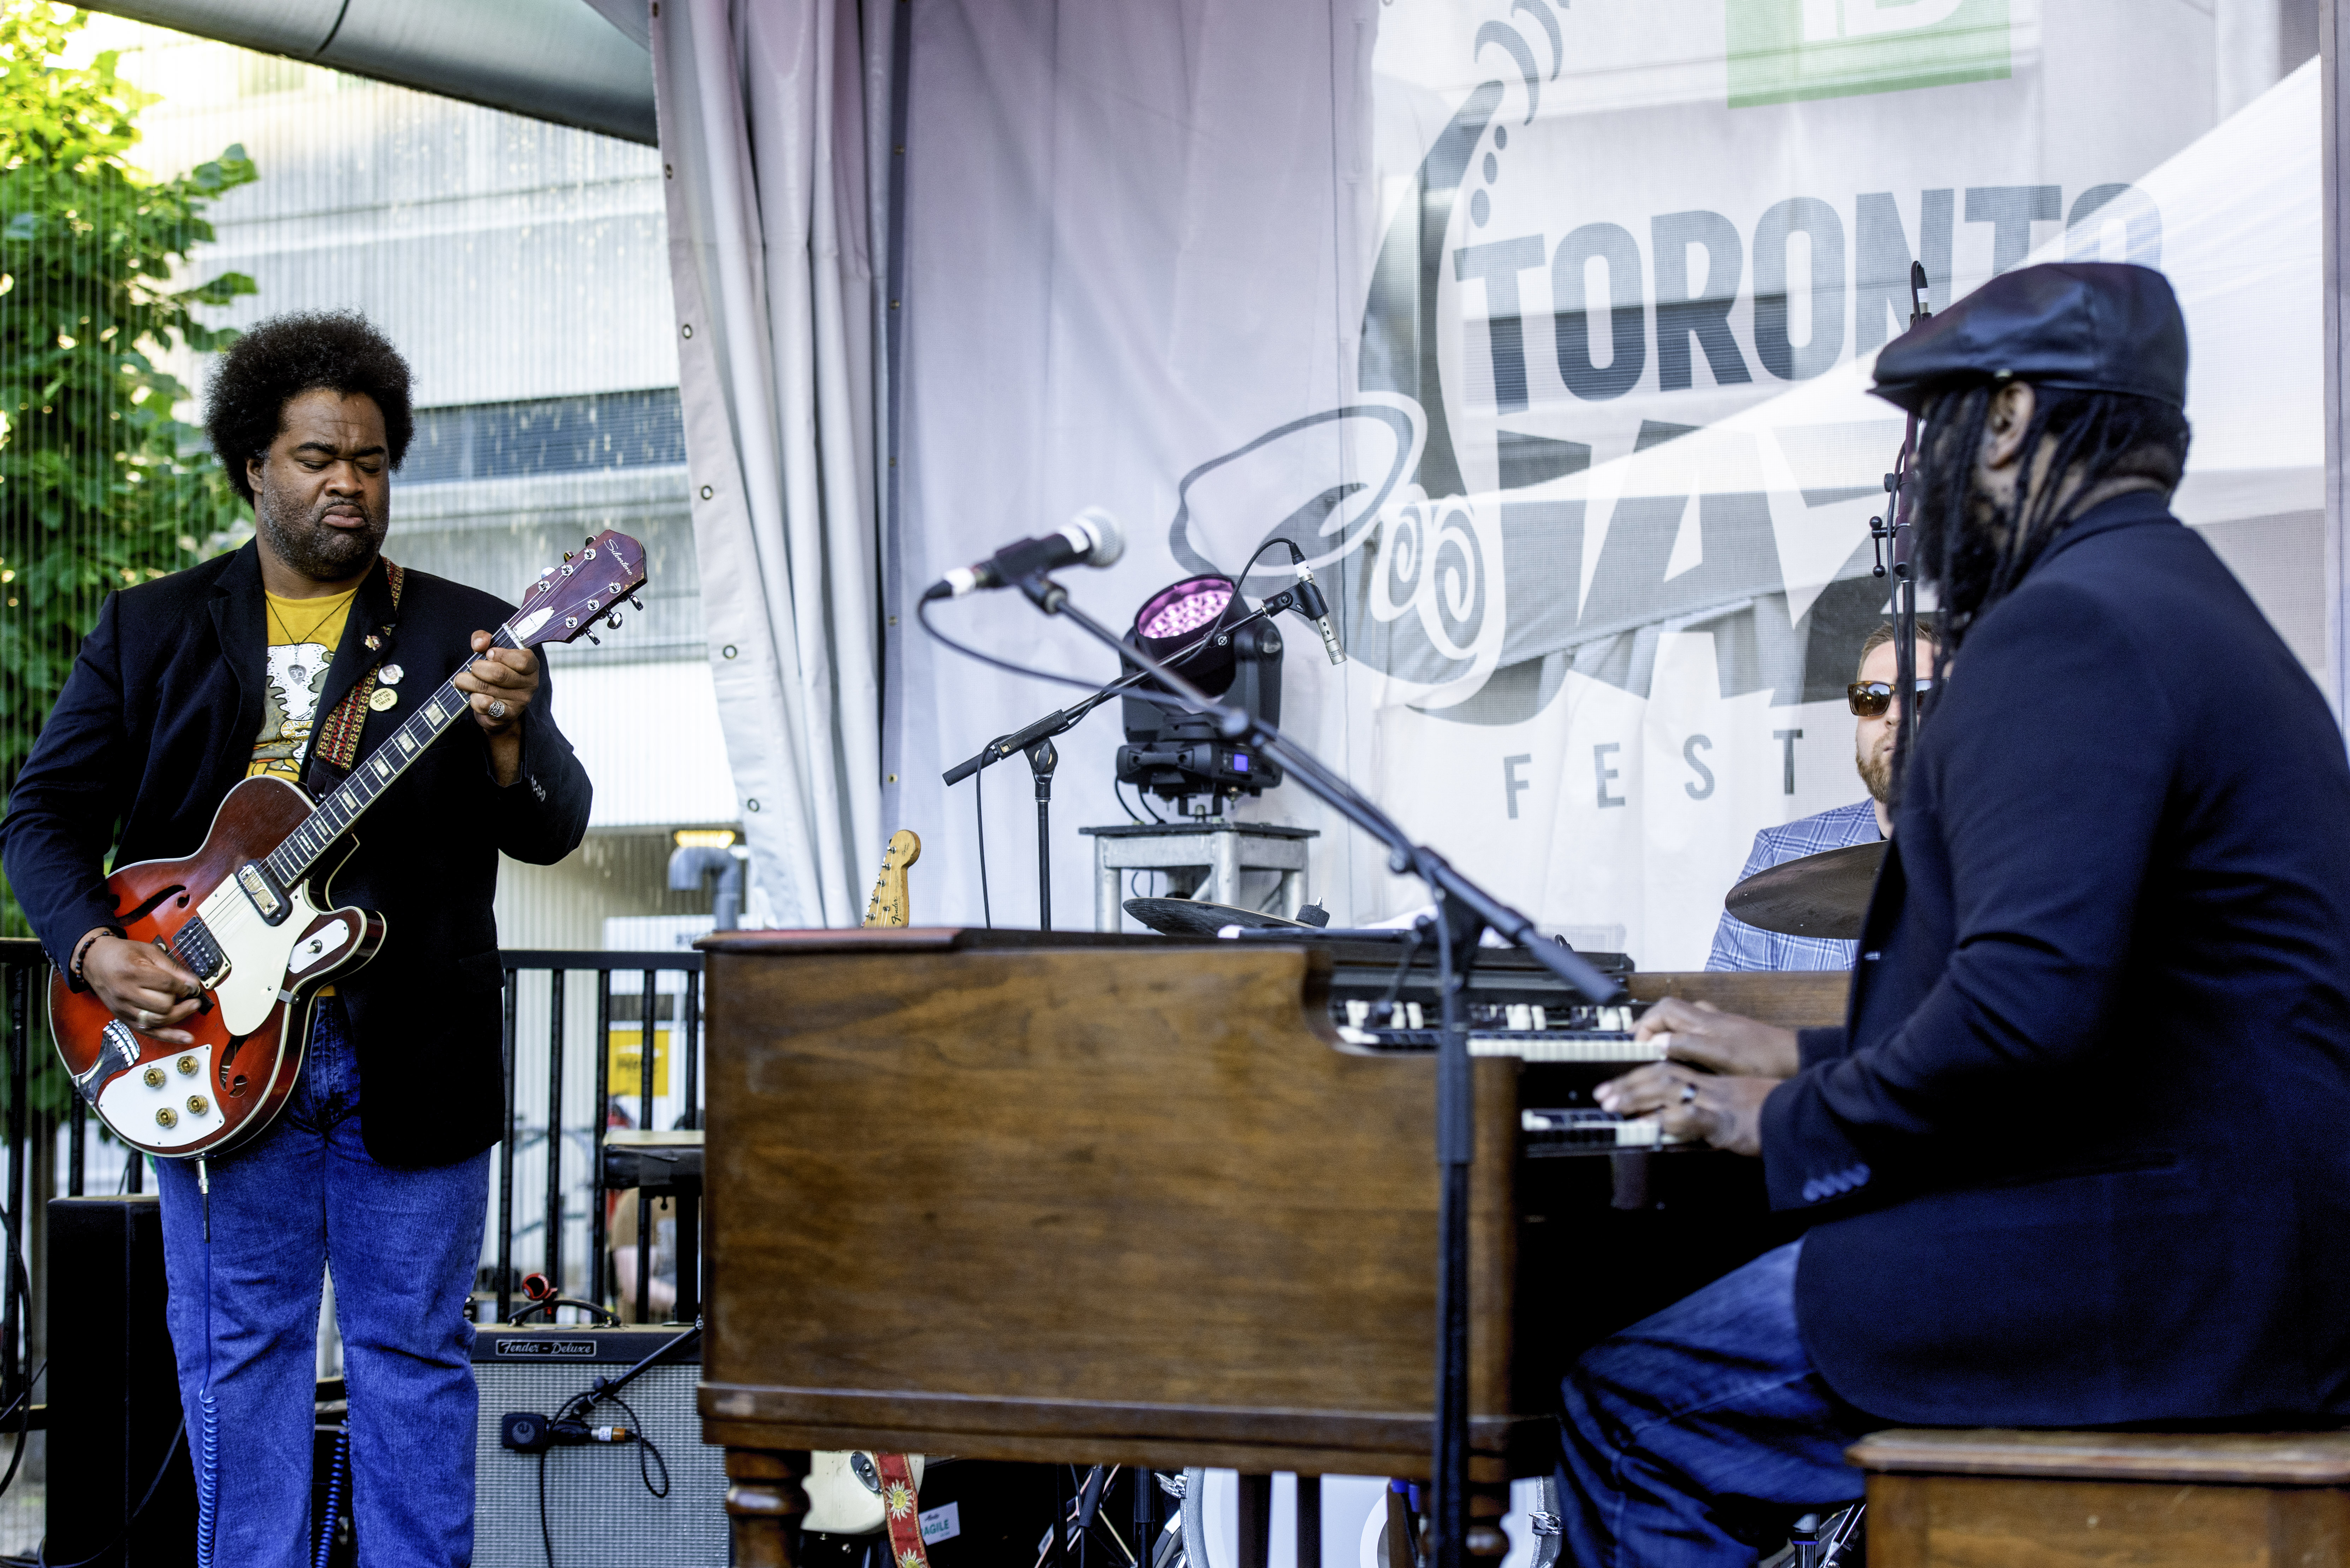 Jimmy James and Delvon Lamarr with Organ Trio at the Toronto Jazz Festival 2019